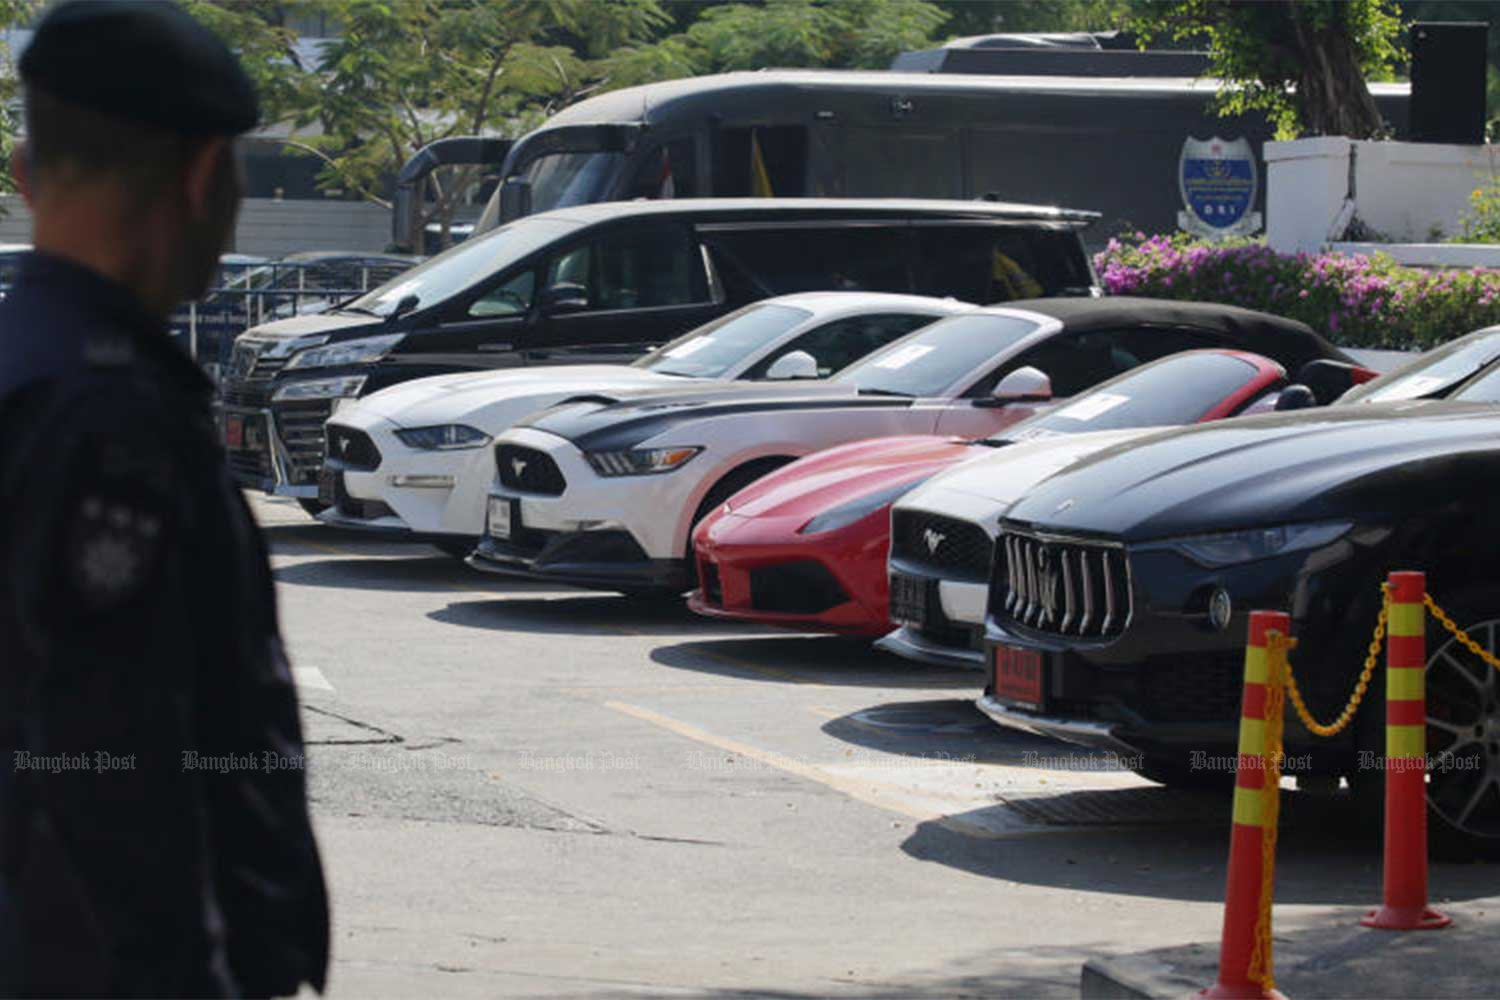 Seven seized luxury cars worth about 43 million baht in the DSI compound on Dec 10 last year - some of the assets seized from suspects in the Forex-3D scam. On Thursday, investigators seized another car, a 27 million baht Aston Martin registered to the chief suspect's wife that had been hidden in Ratchaburi. (File photo)